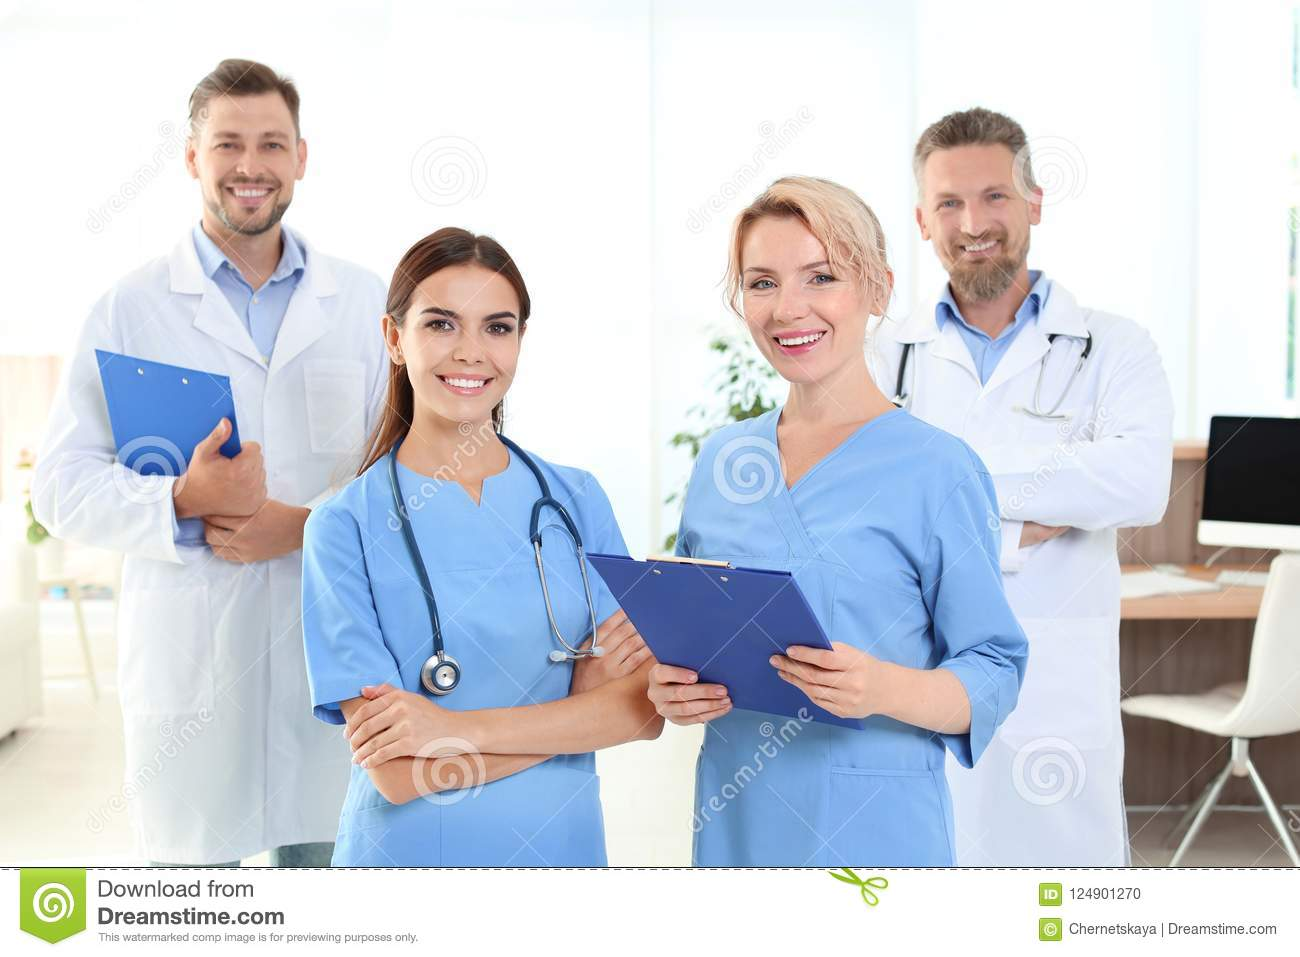 Doctors and medical assistants in clinic